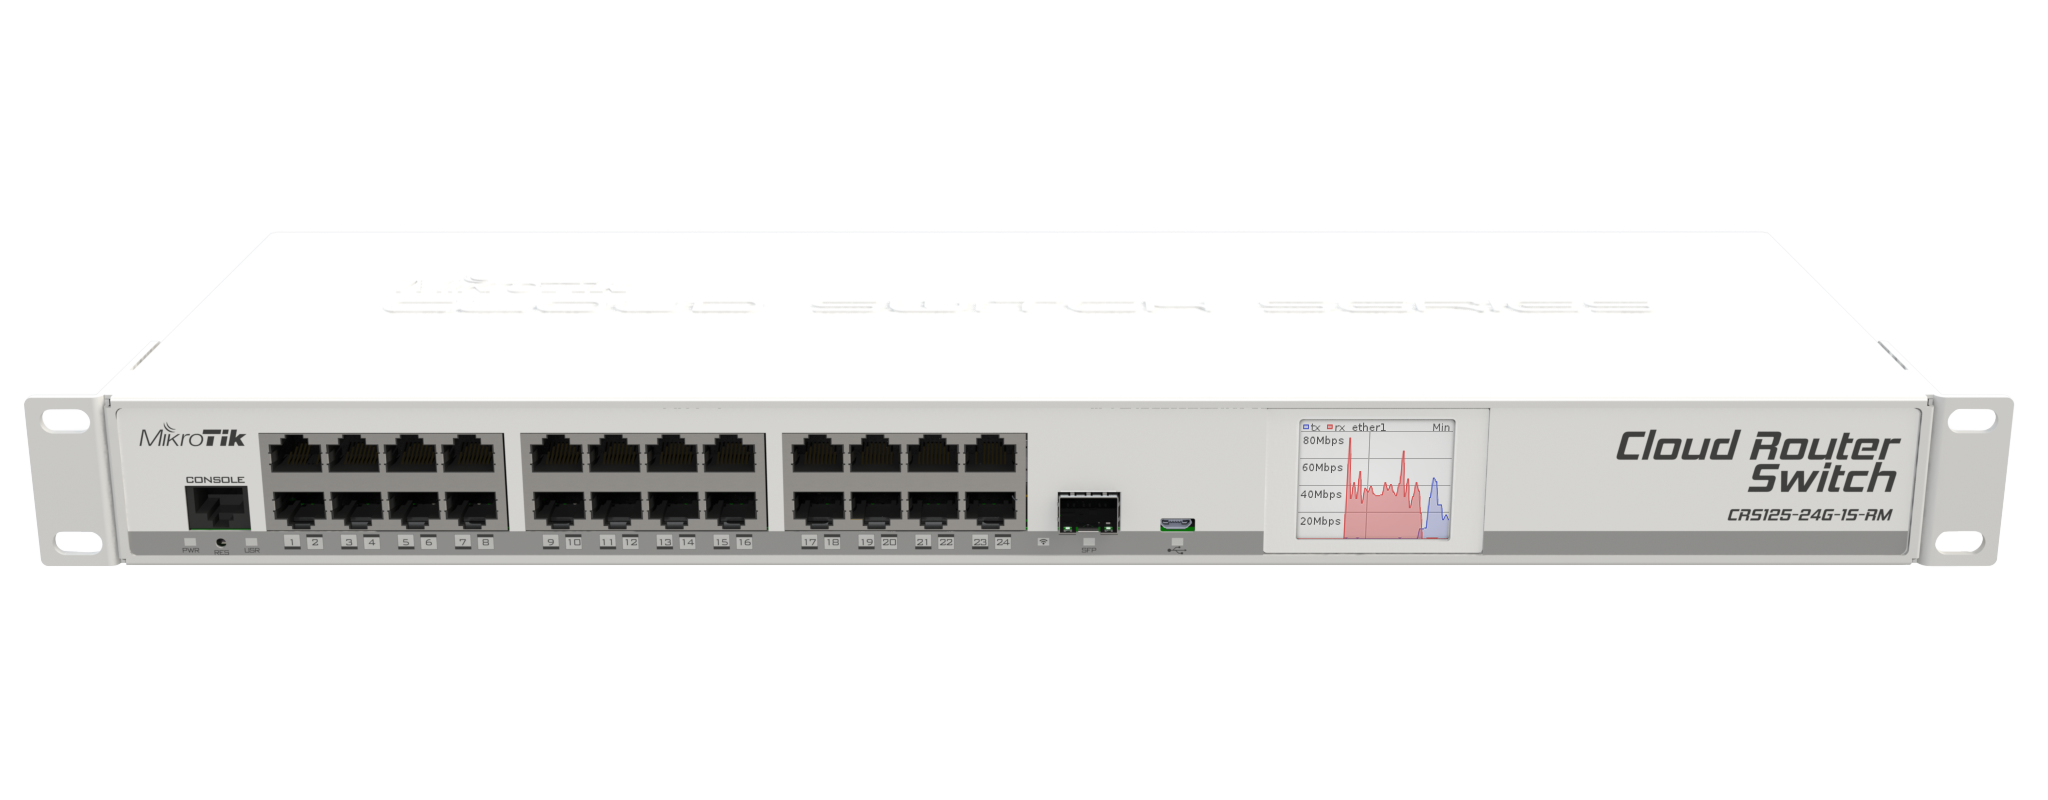 Mikrotik Routers And Wireless Products Crs125 24g 1s Rm